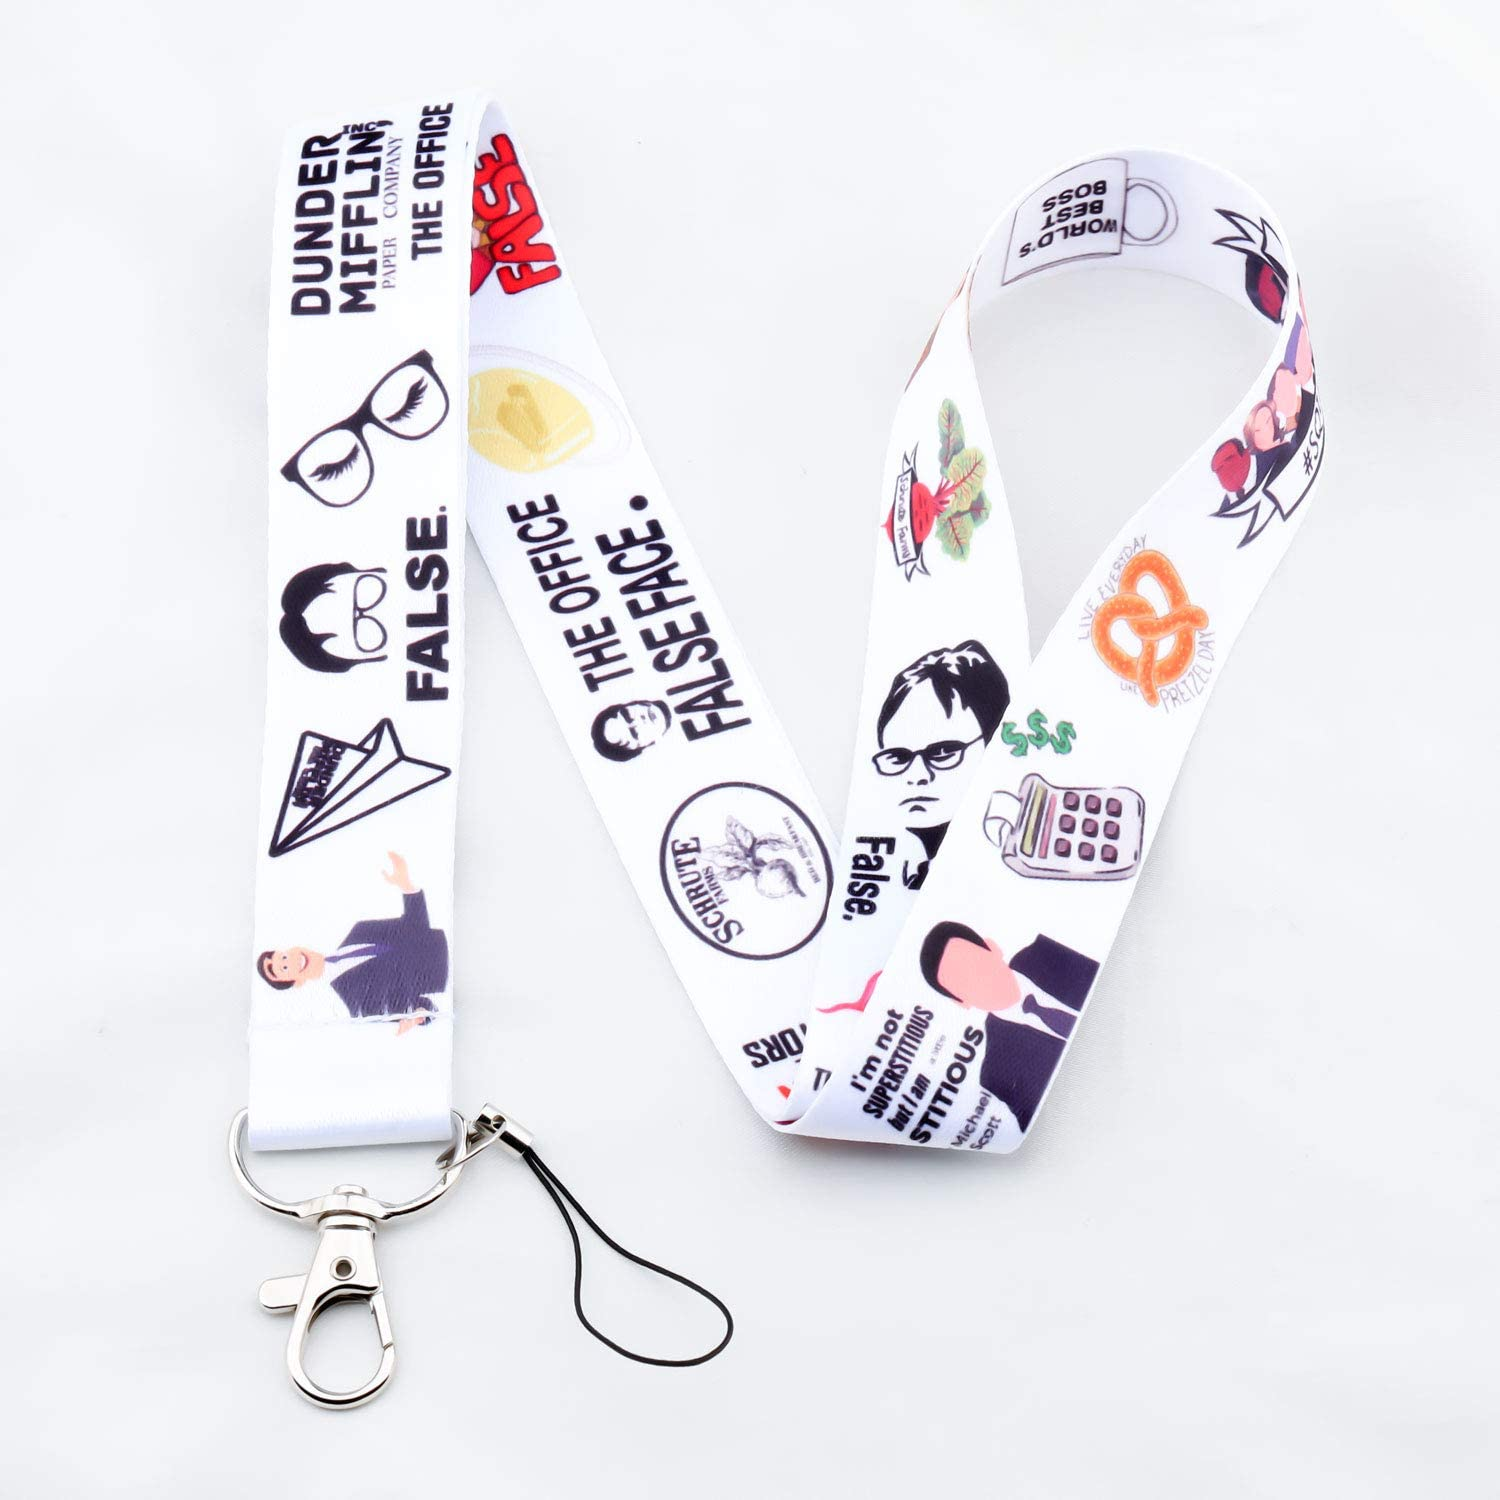 BEKECH TV Show The Office Inspired Gift The Office Dwight Schrute Character Lanyard Gift for The Office Lovers Girls Women Company TV Series Fans Gift